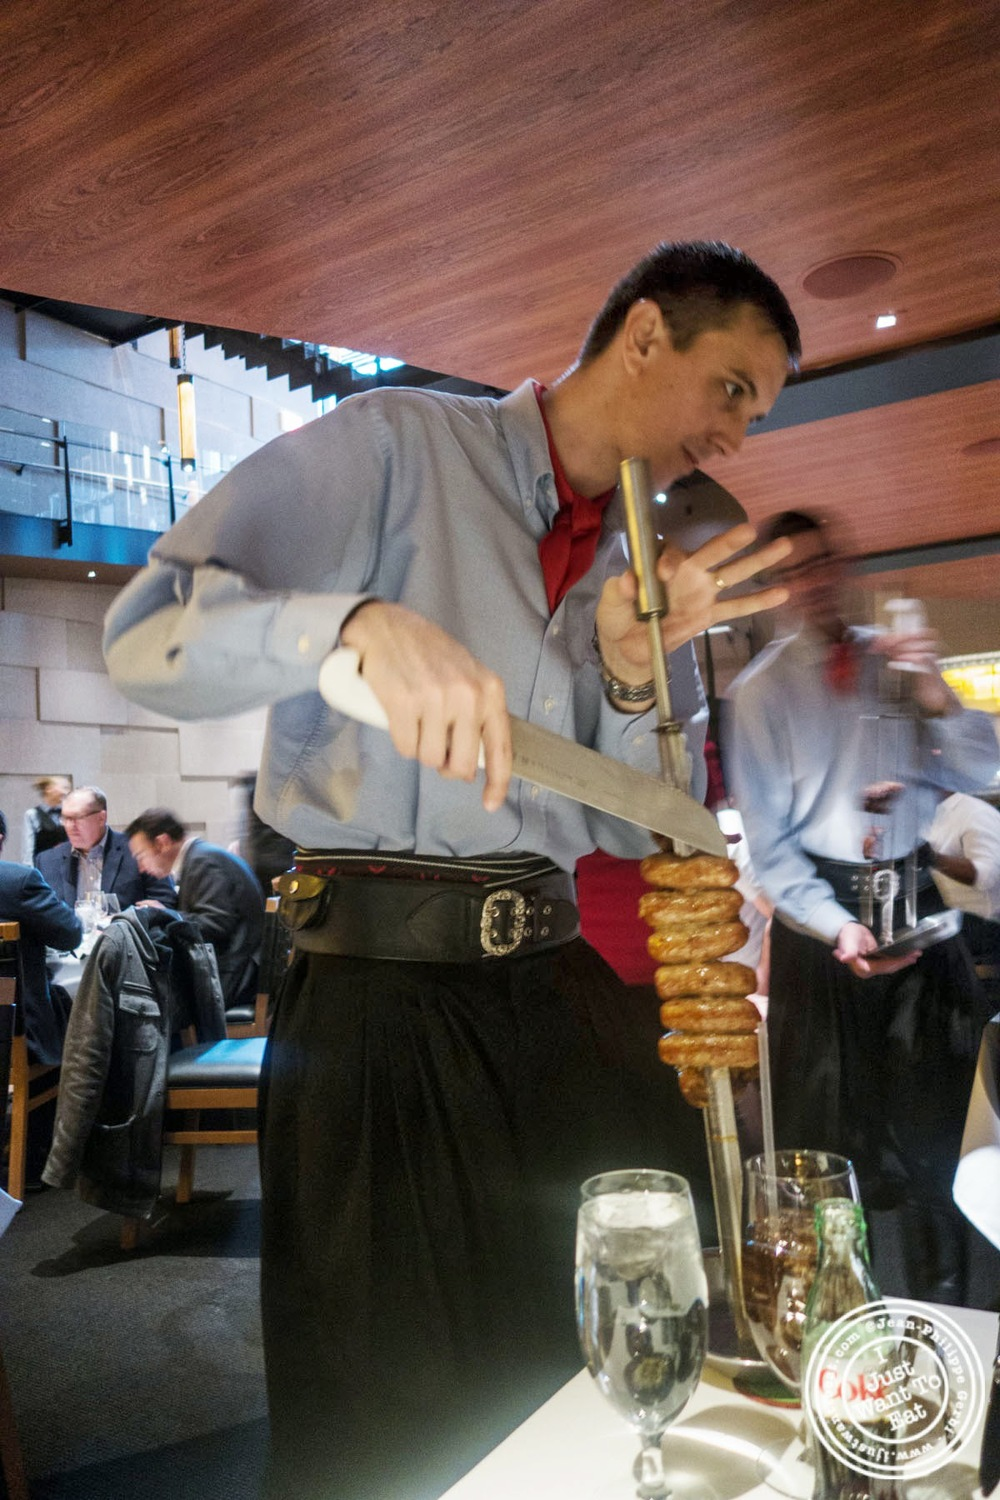 image of churrasco at Fogo De Chao Brazilian steakhouse in NYC, New York